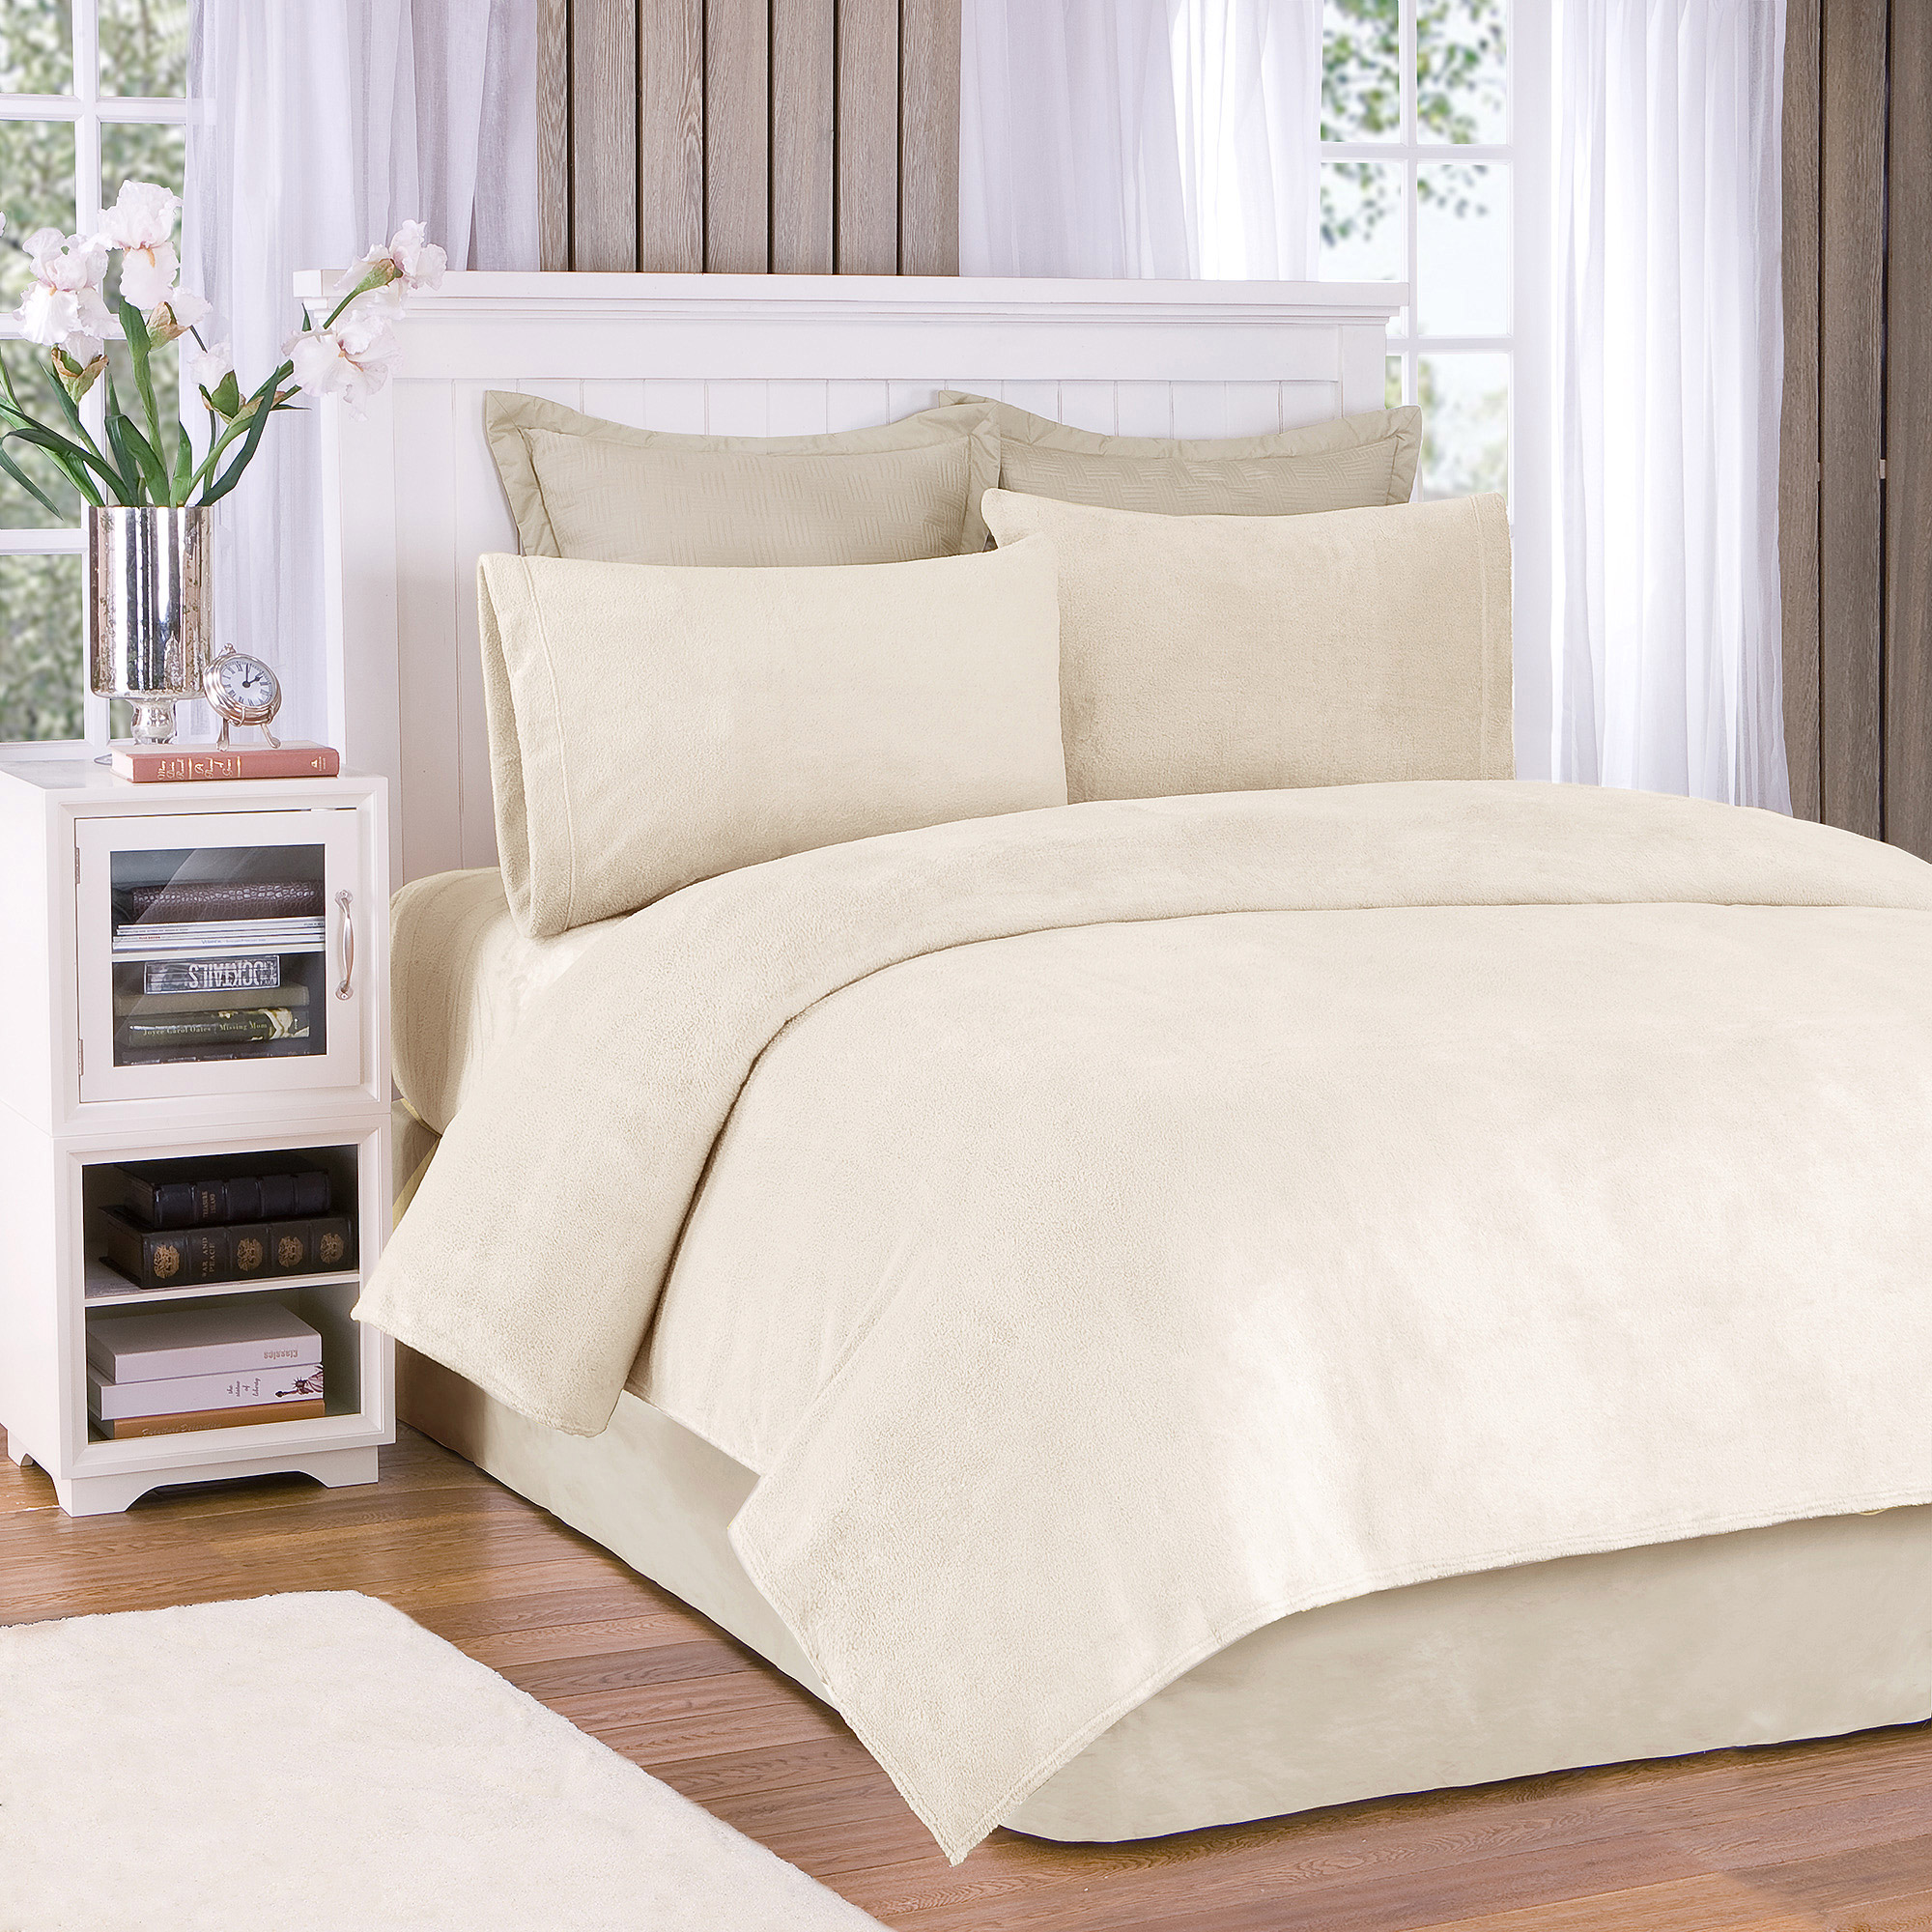 Comfort Classics Soloft Plush Solid Micro Raschel Bedding Sheet Set